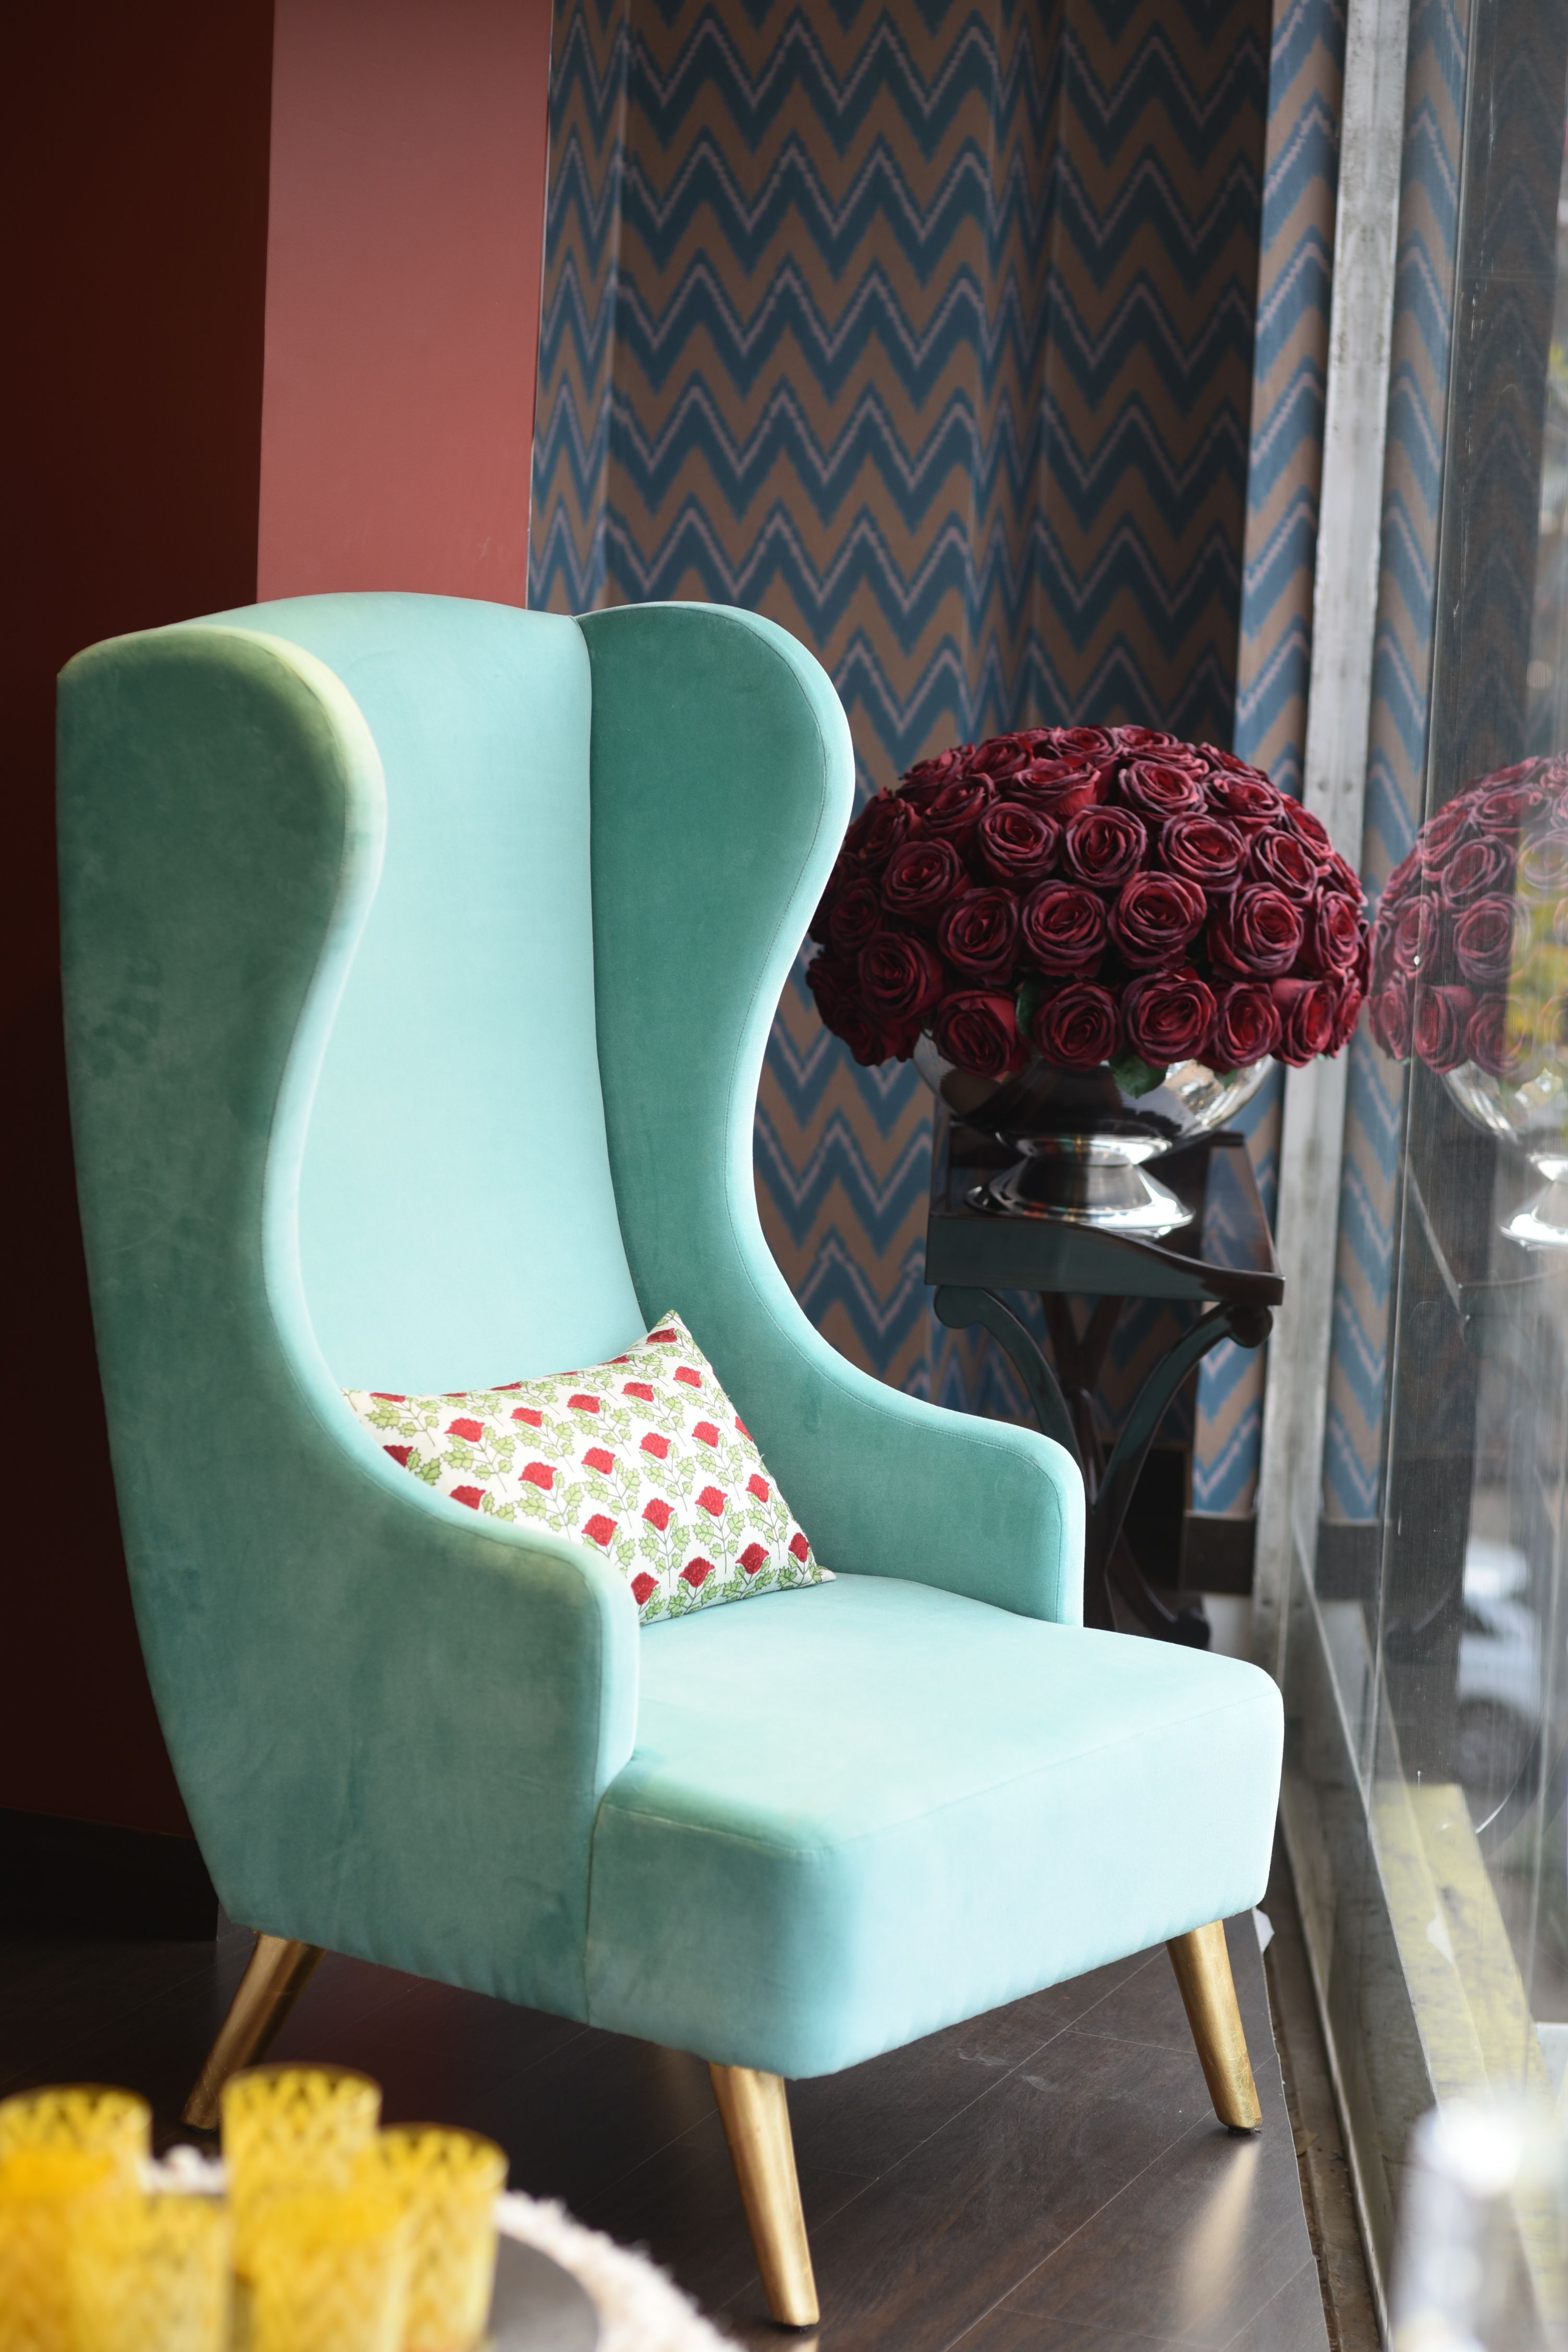 Tipsyananddesigns Statement Chairs Chair Egg Chair Furniture